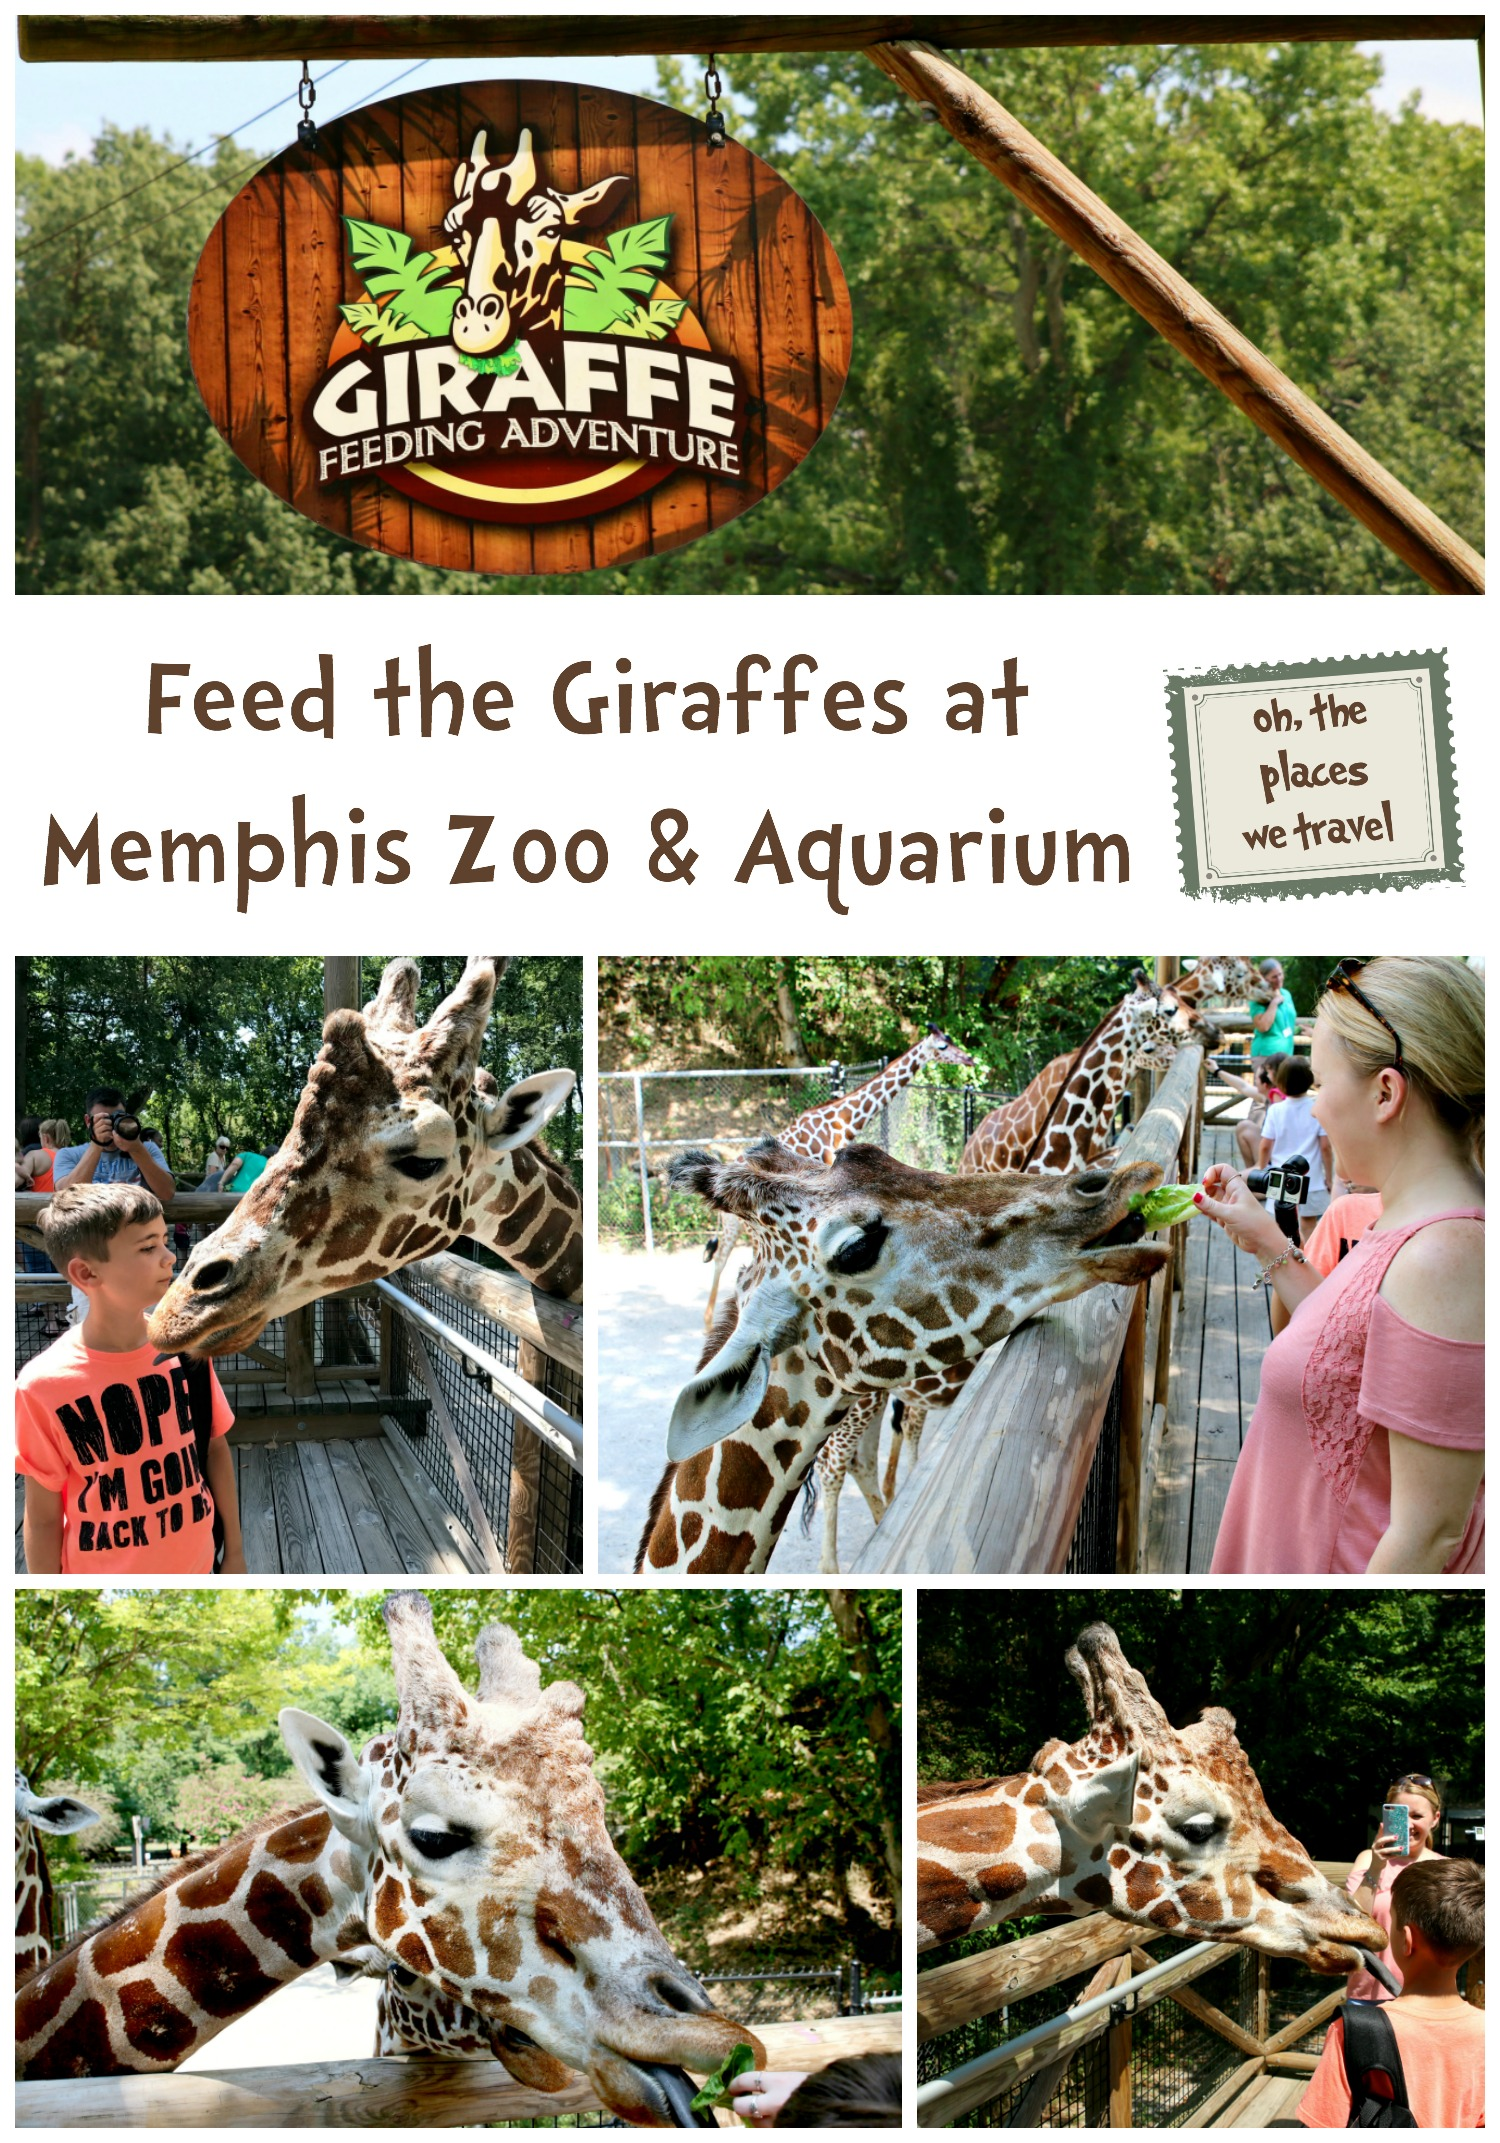 Feed the Giraffes at Memphis Zoo